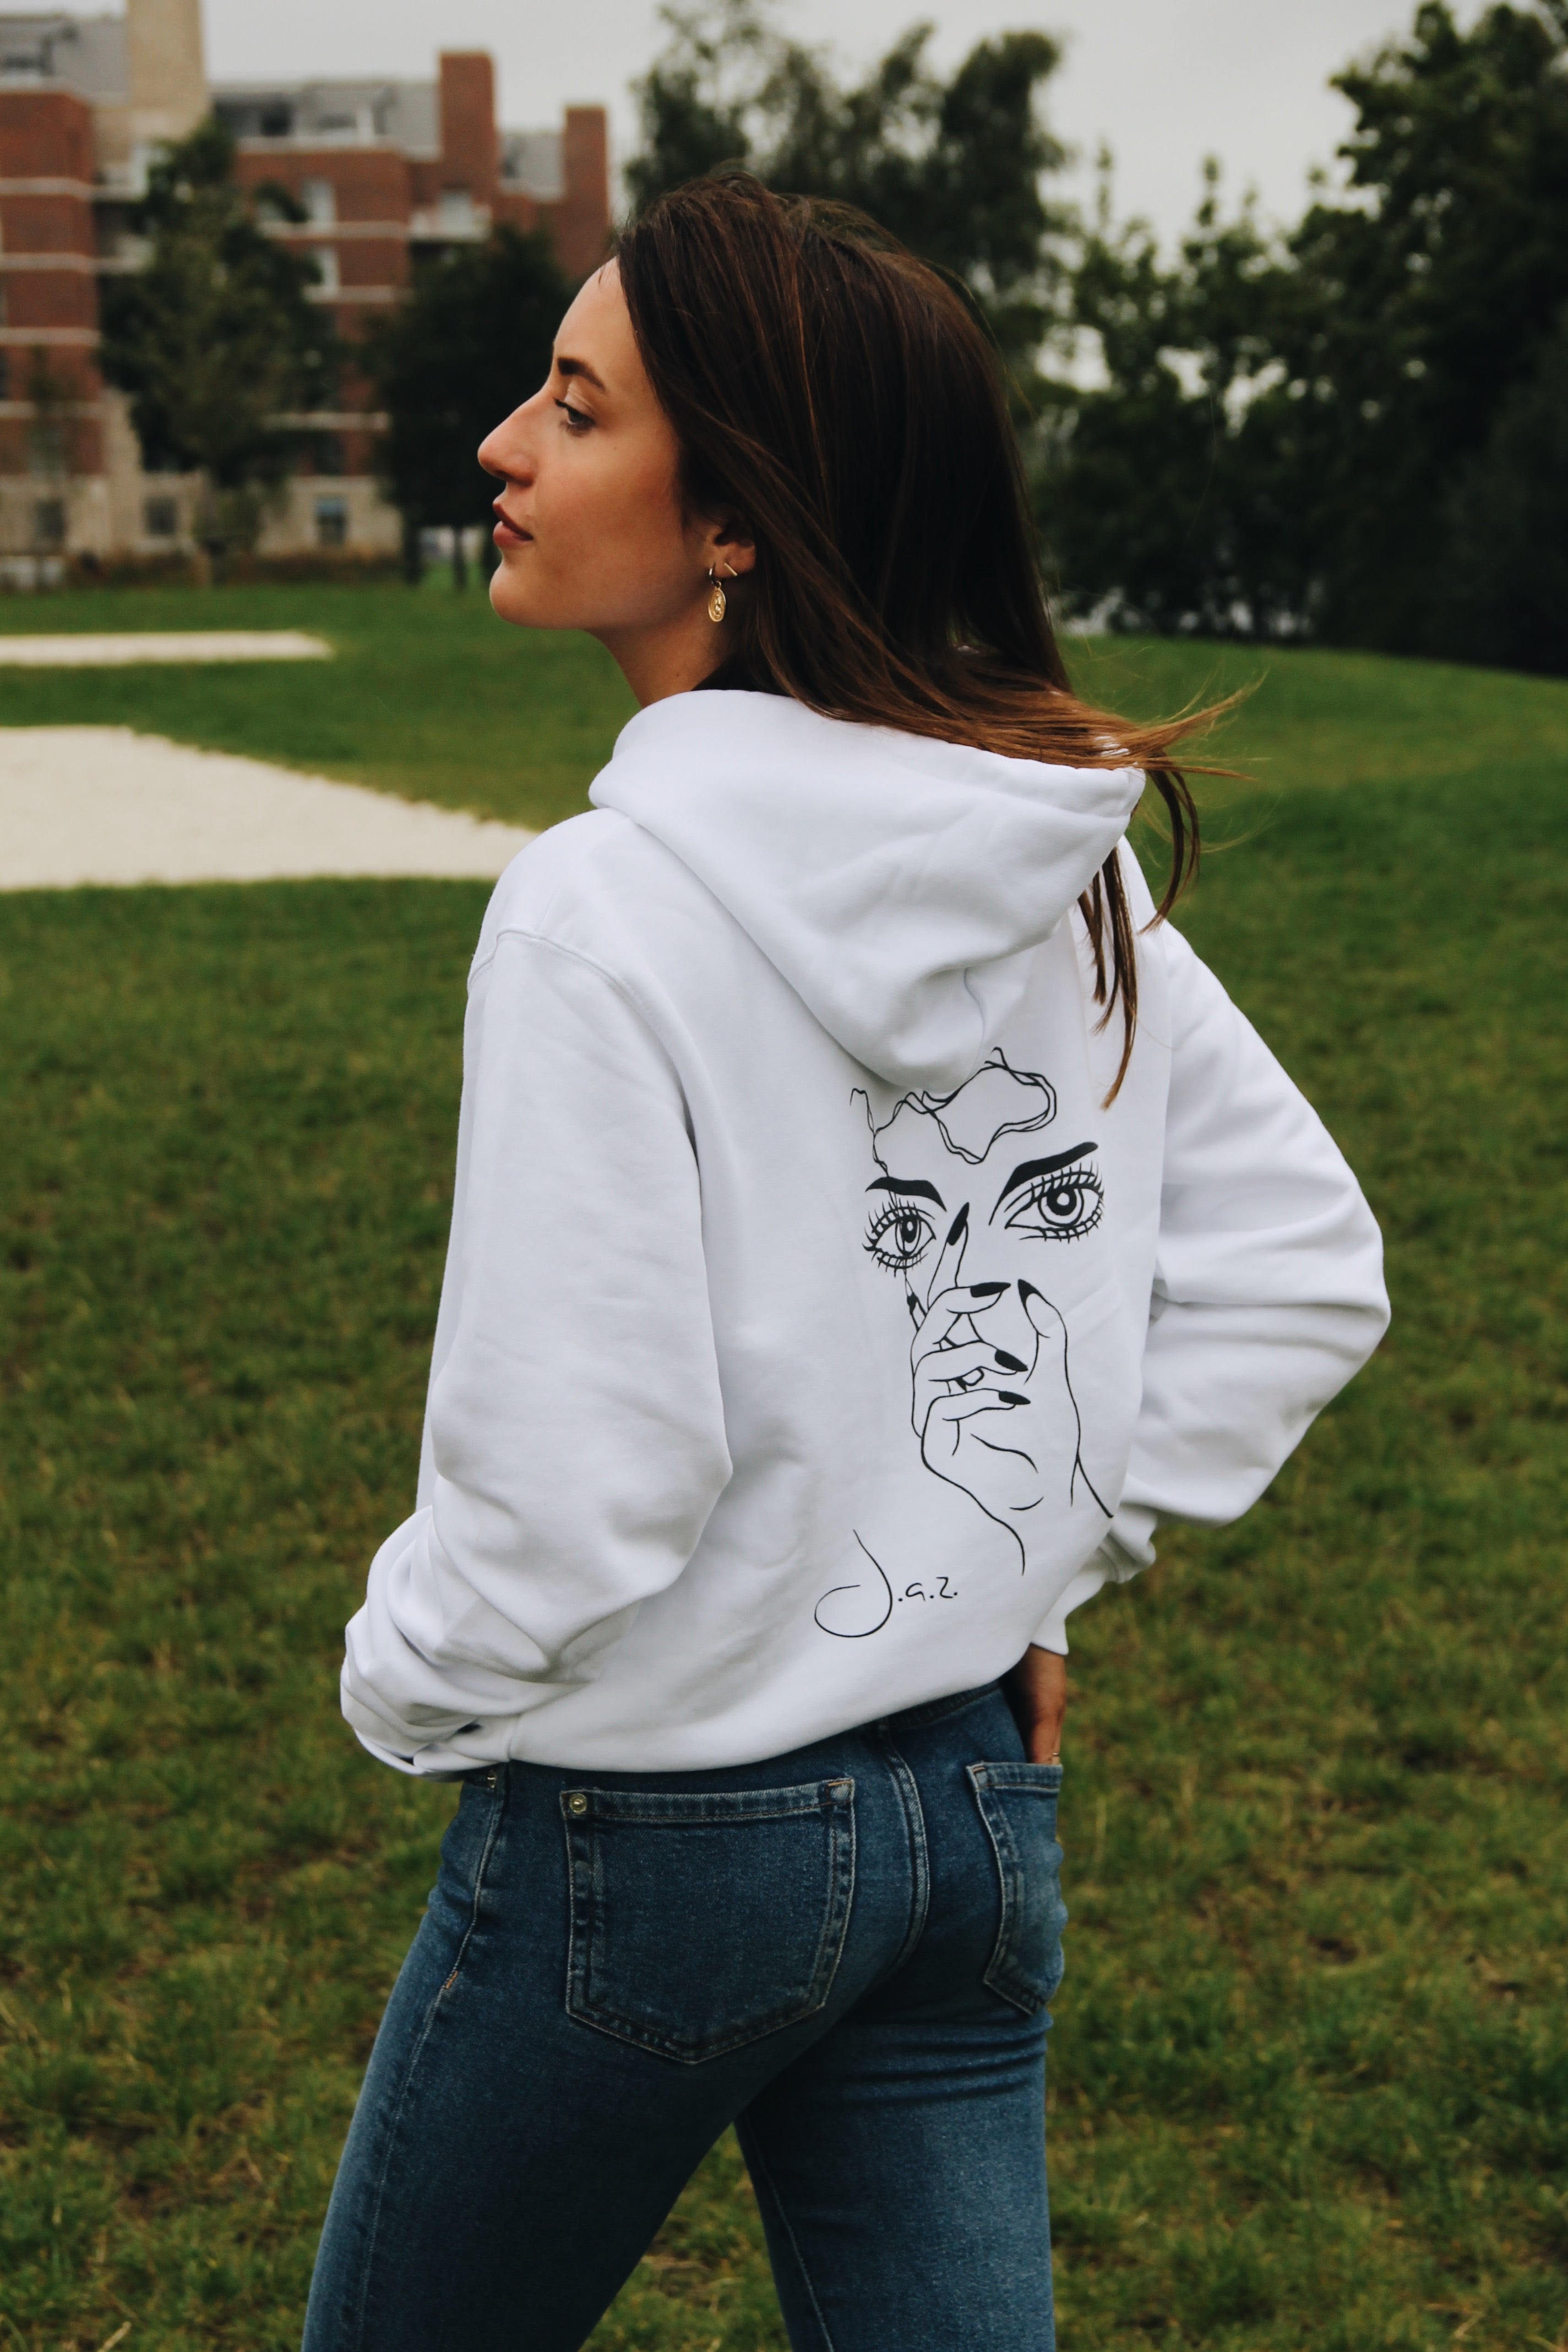 JNGL Clothing - Masterpiece of Art hoodie // White - Back (On Model)